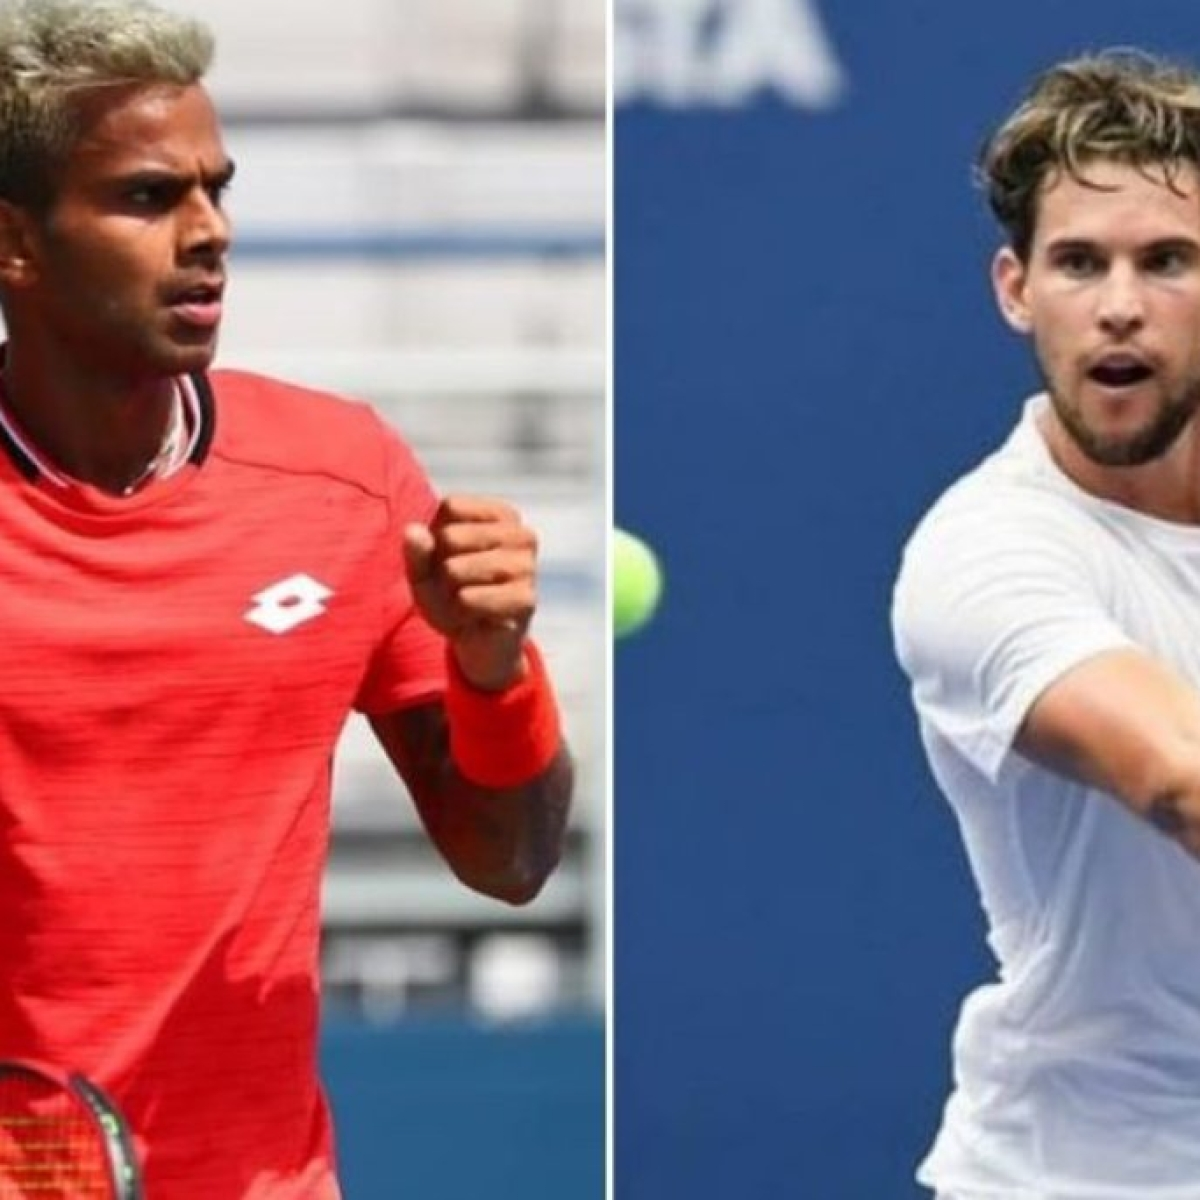 Sumit Nagal vs Dominic Thiem: Where and when to watch the US Open second-round match in India